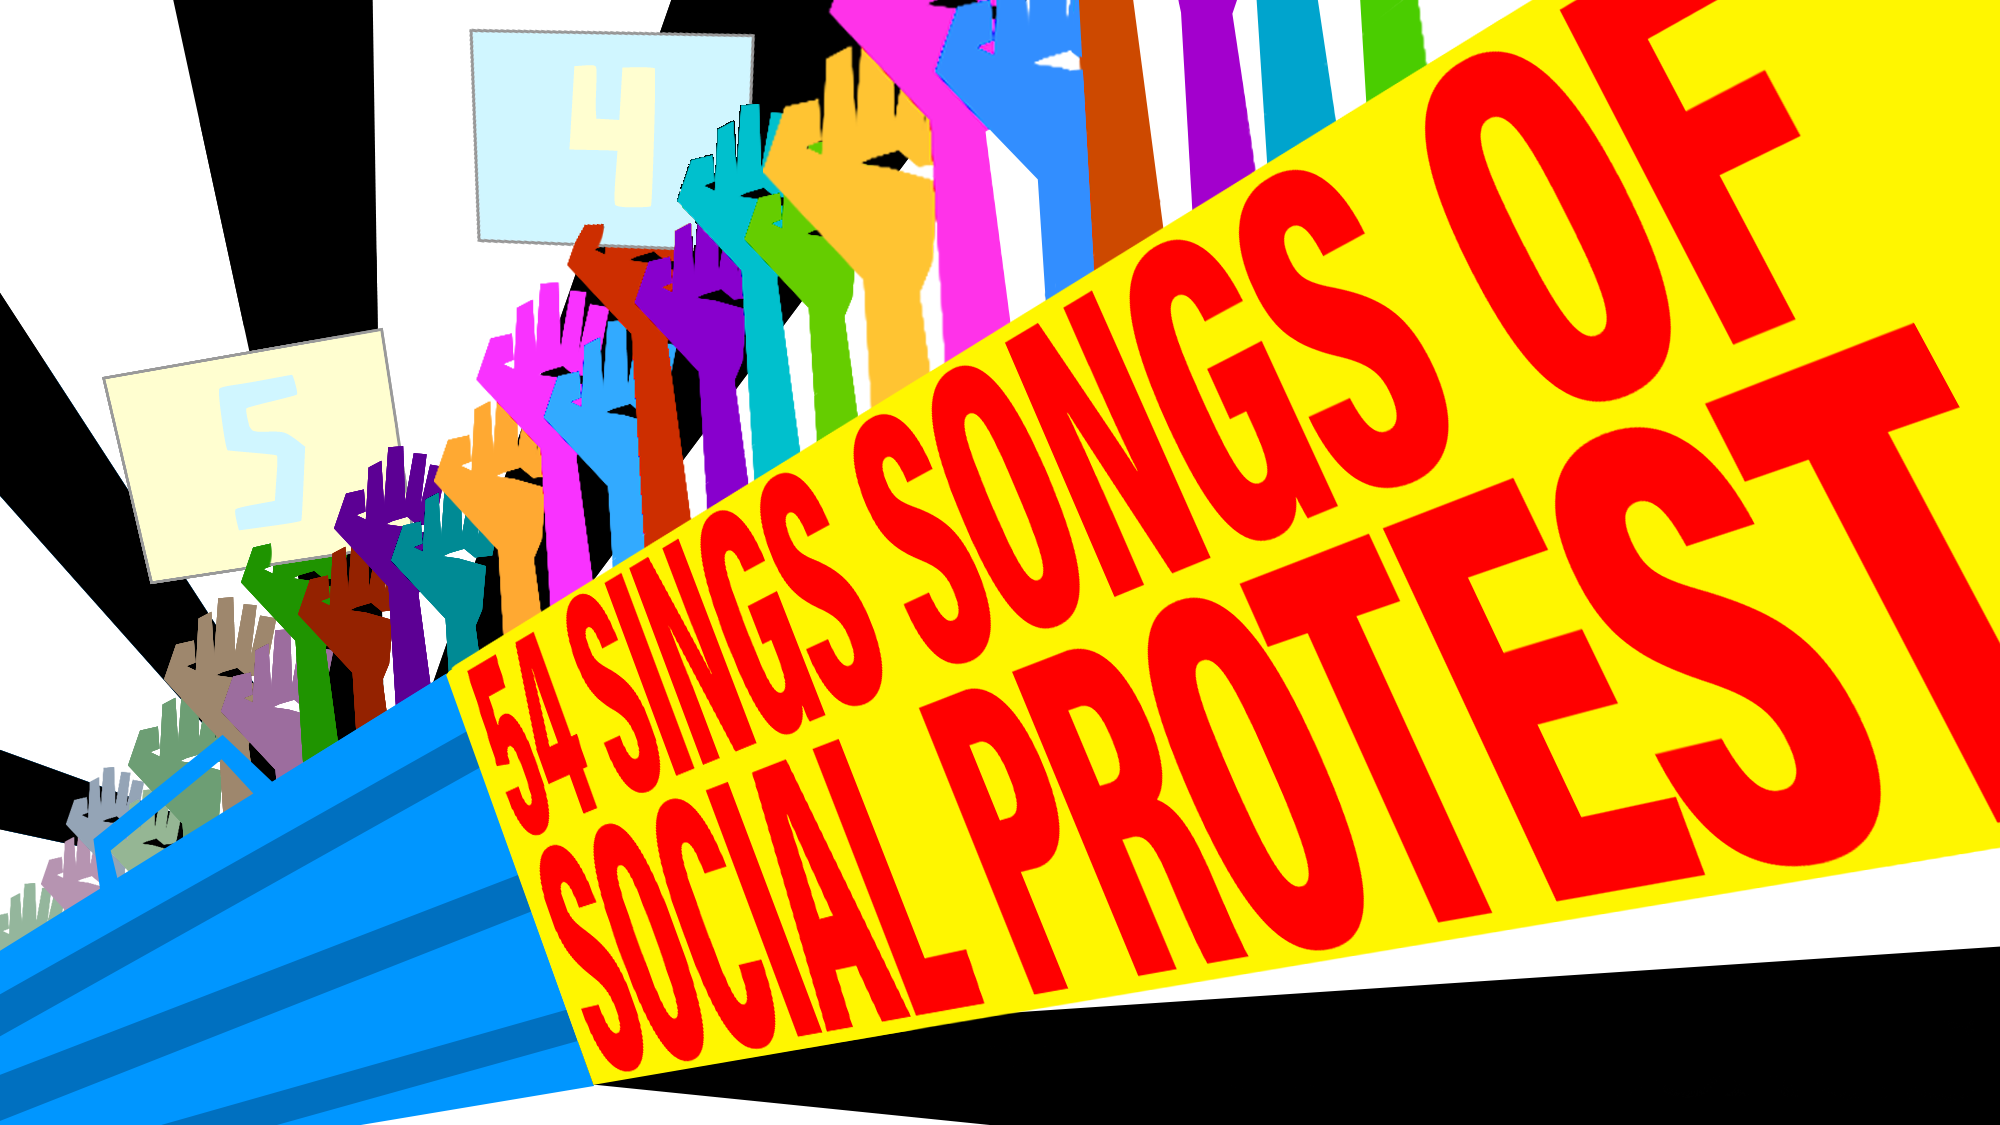 54 Sings Songs of Social Protest